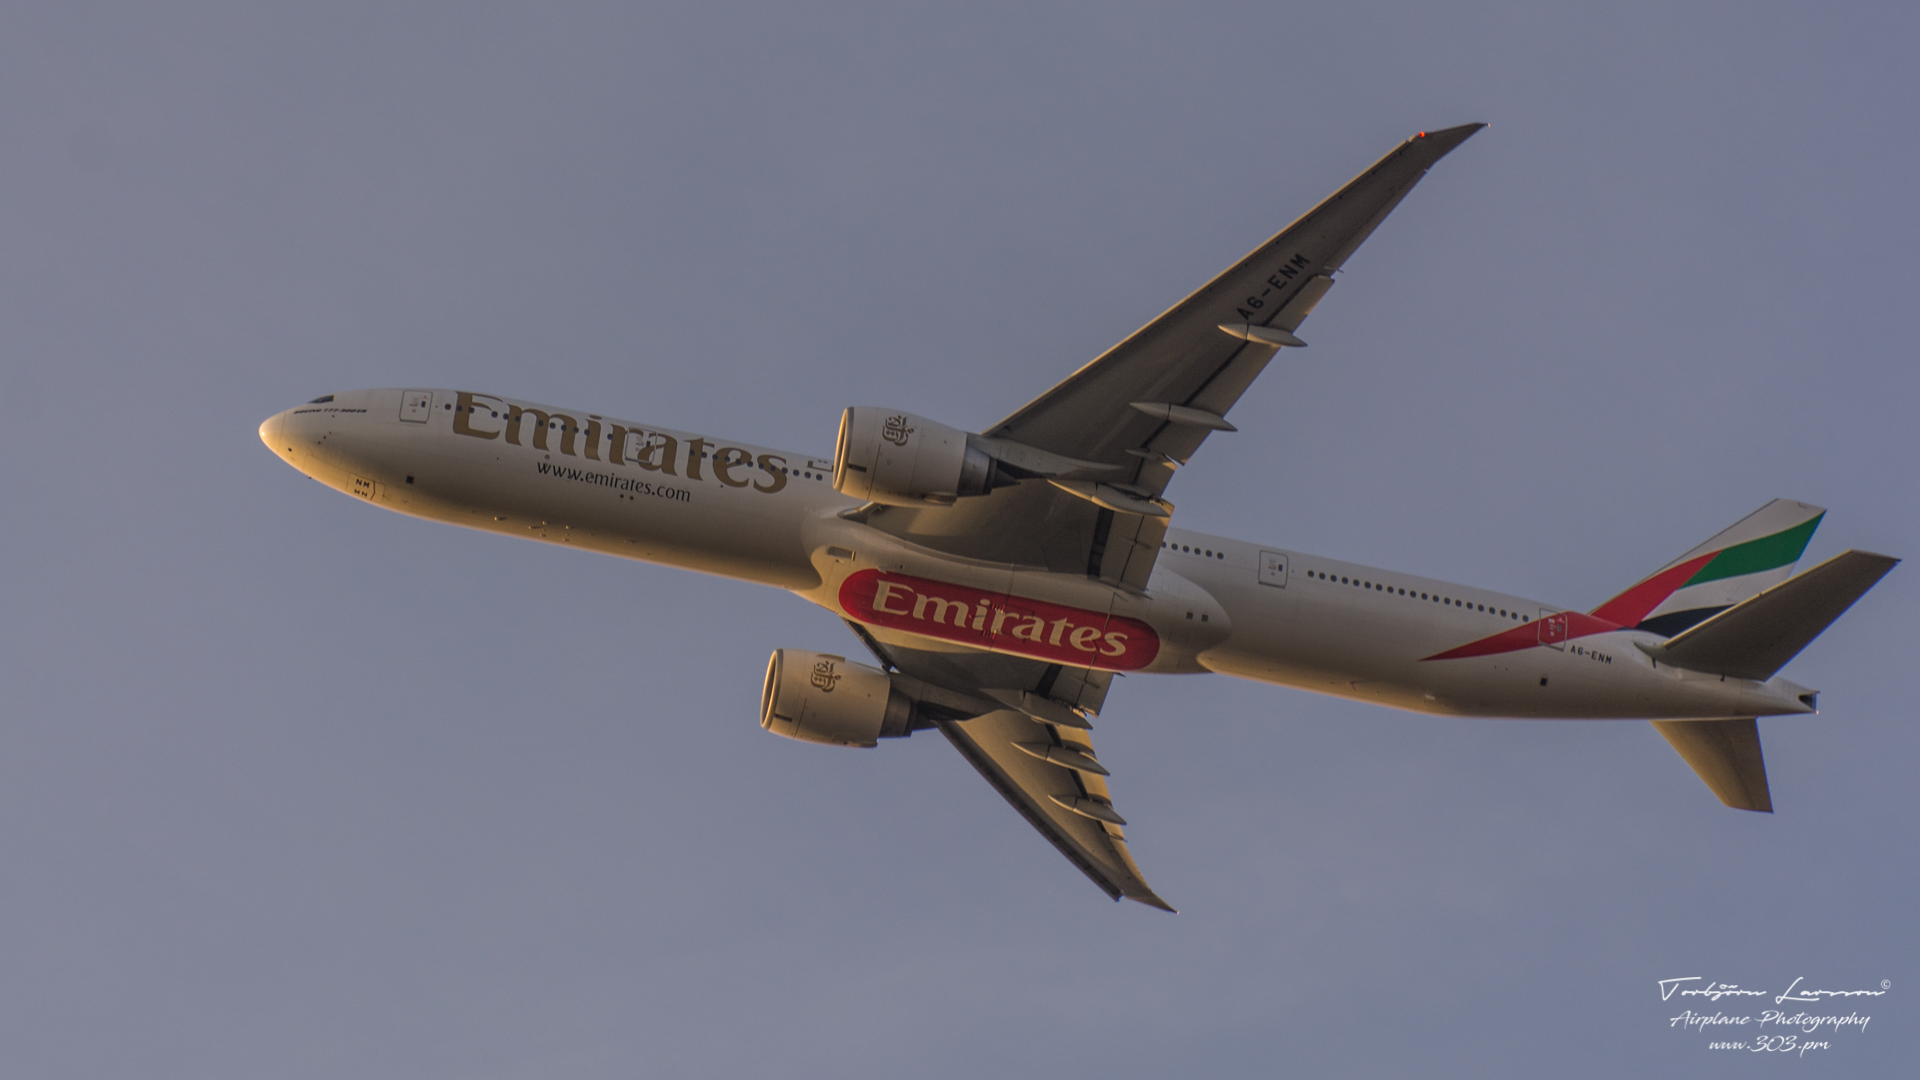 TBE_4652-Boeing 777-31HER - Emirates Airlines A6-ENM